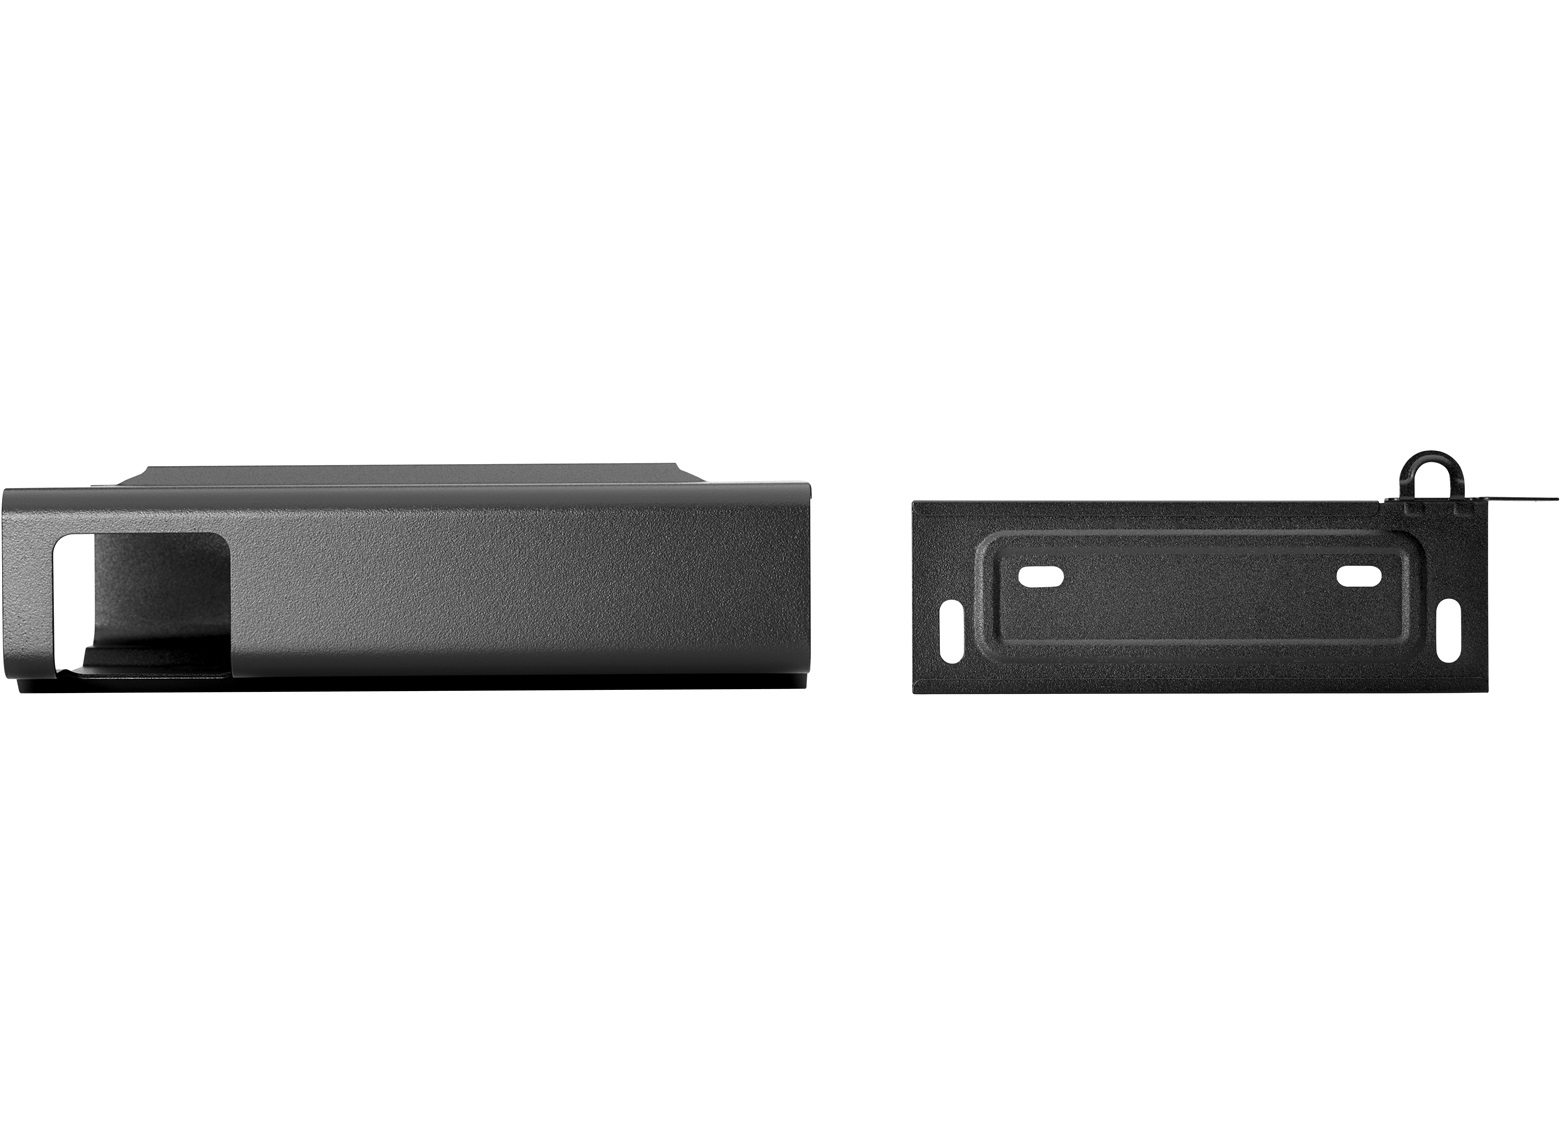 HP Desktop Mini Security/Dual Vesa Sleeve VESA LCD HP renew